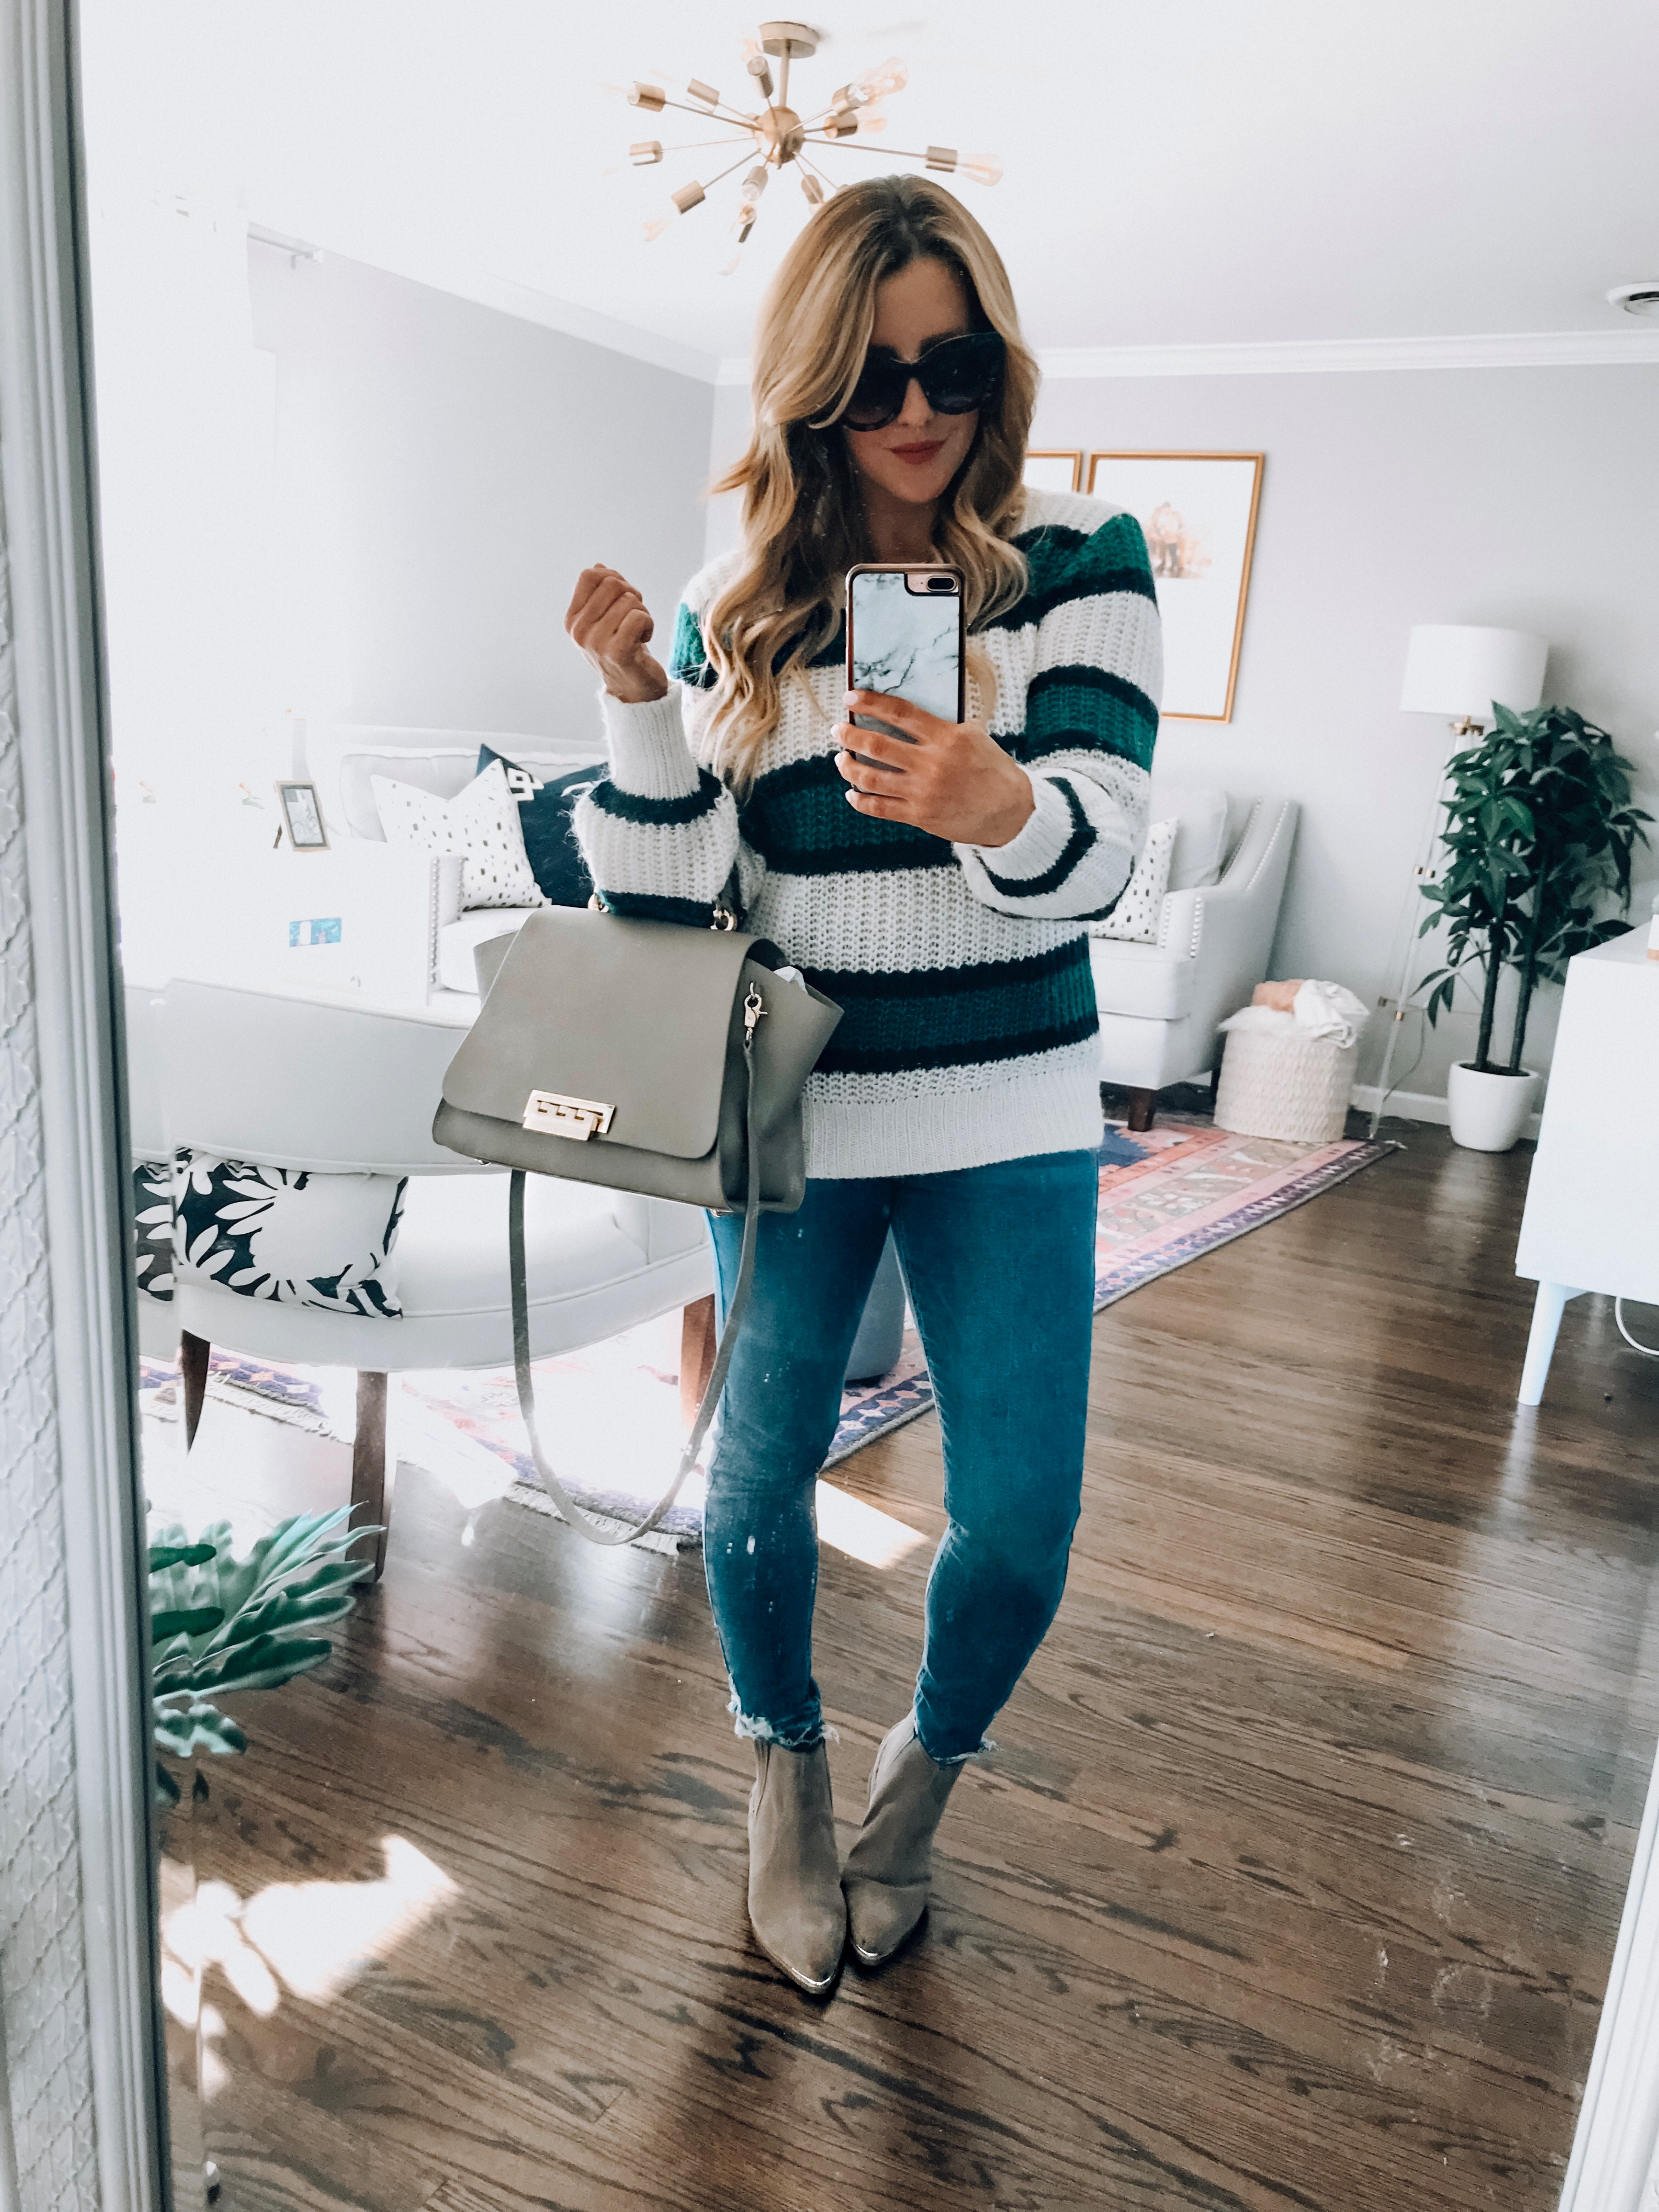 Best Striped Sweaters roundup featured by top US fashion blog, For the Love: image of a woman wearing an Abercrombie & Fitch striped sweater, TOPSHOP ripped hem jeans and Zac Posen Crossbody bag.